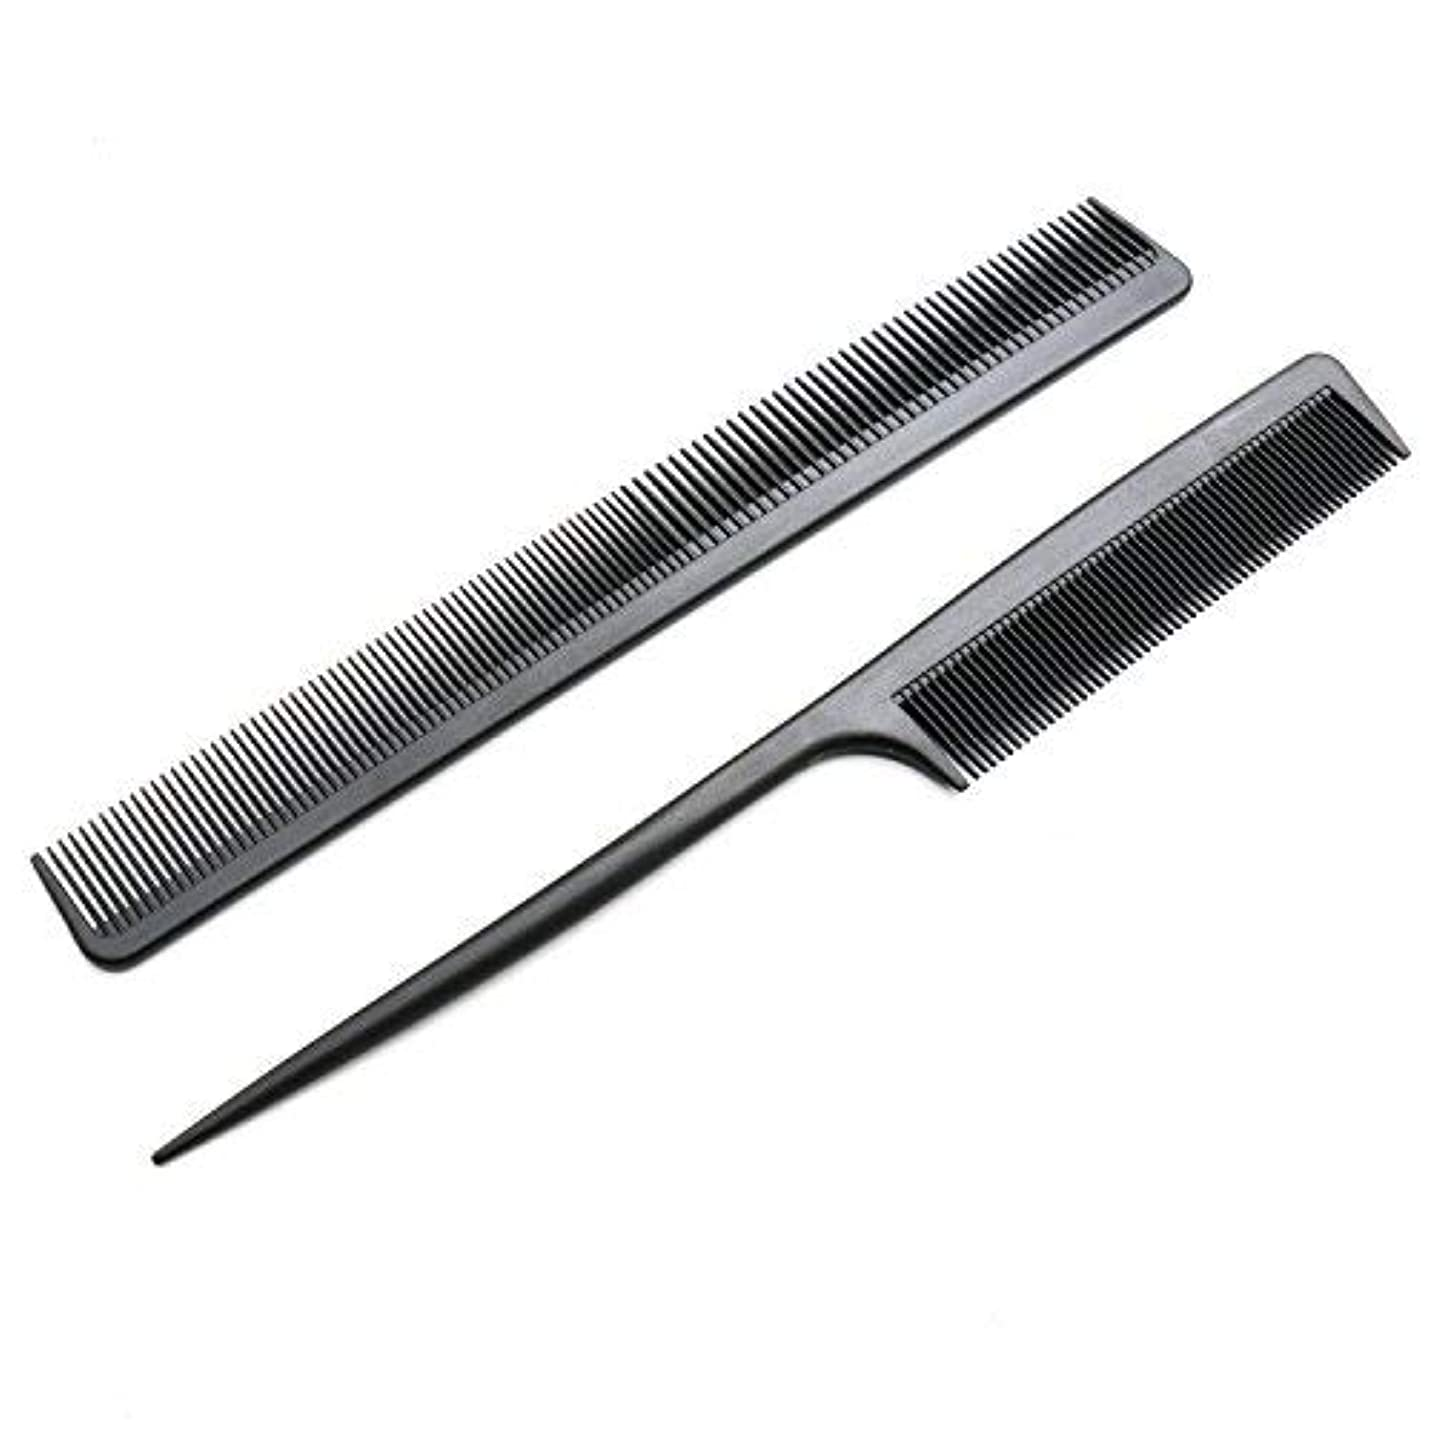 電球息子ピル2 Pack Carbon Fiber Anti Static Chemical And Heat Resistant Tail Comb For All Hair Types,Black [並行輸入品]